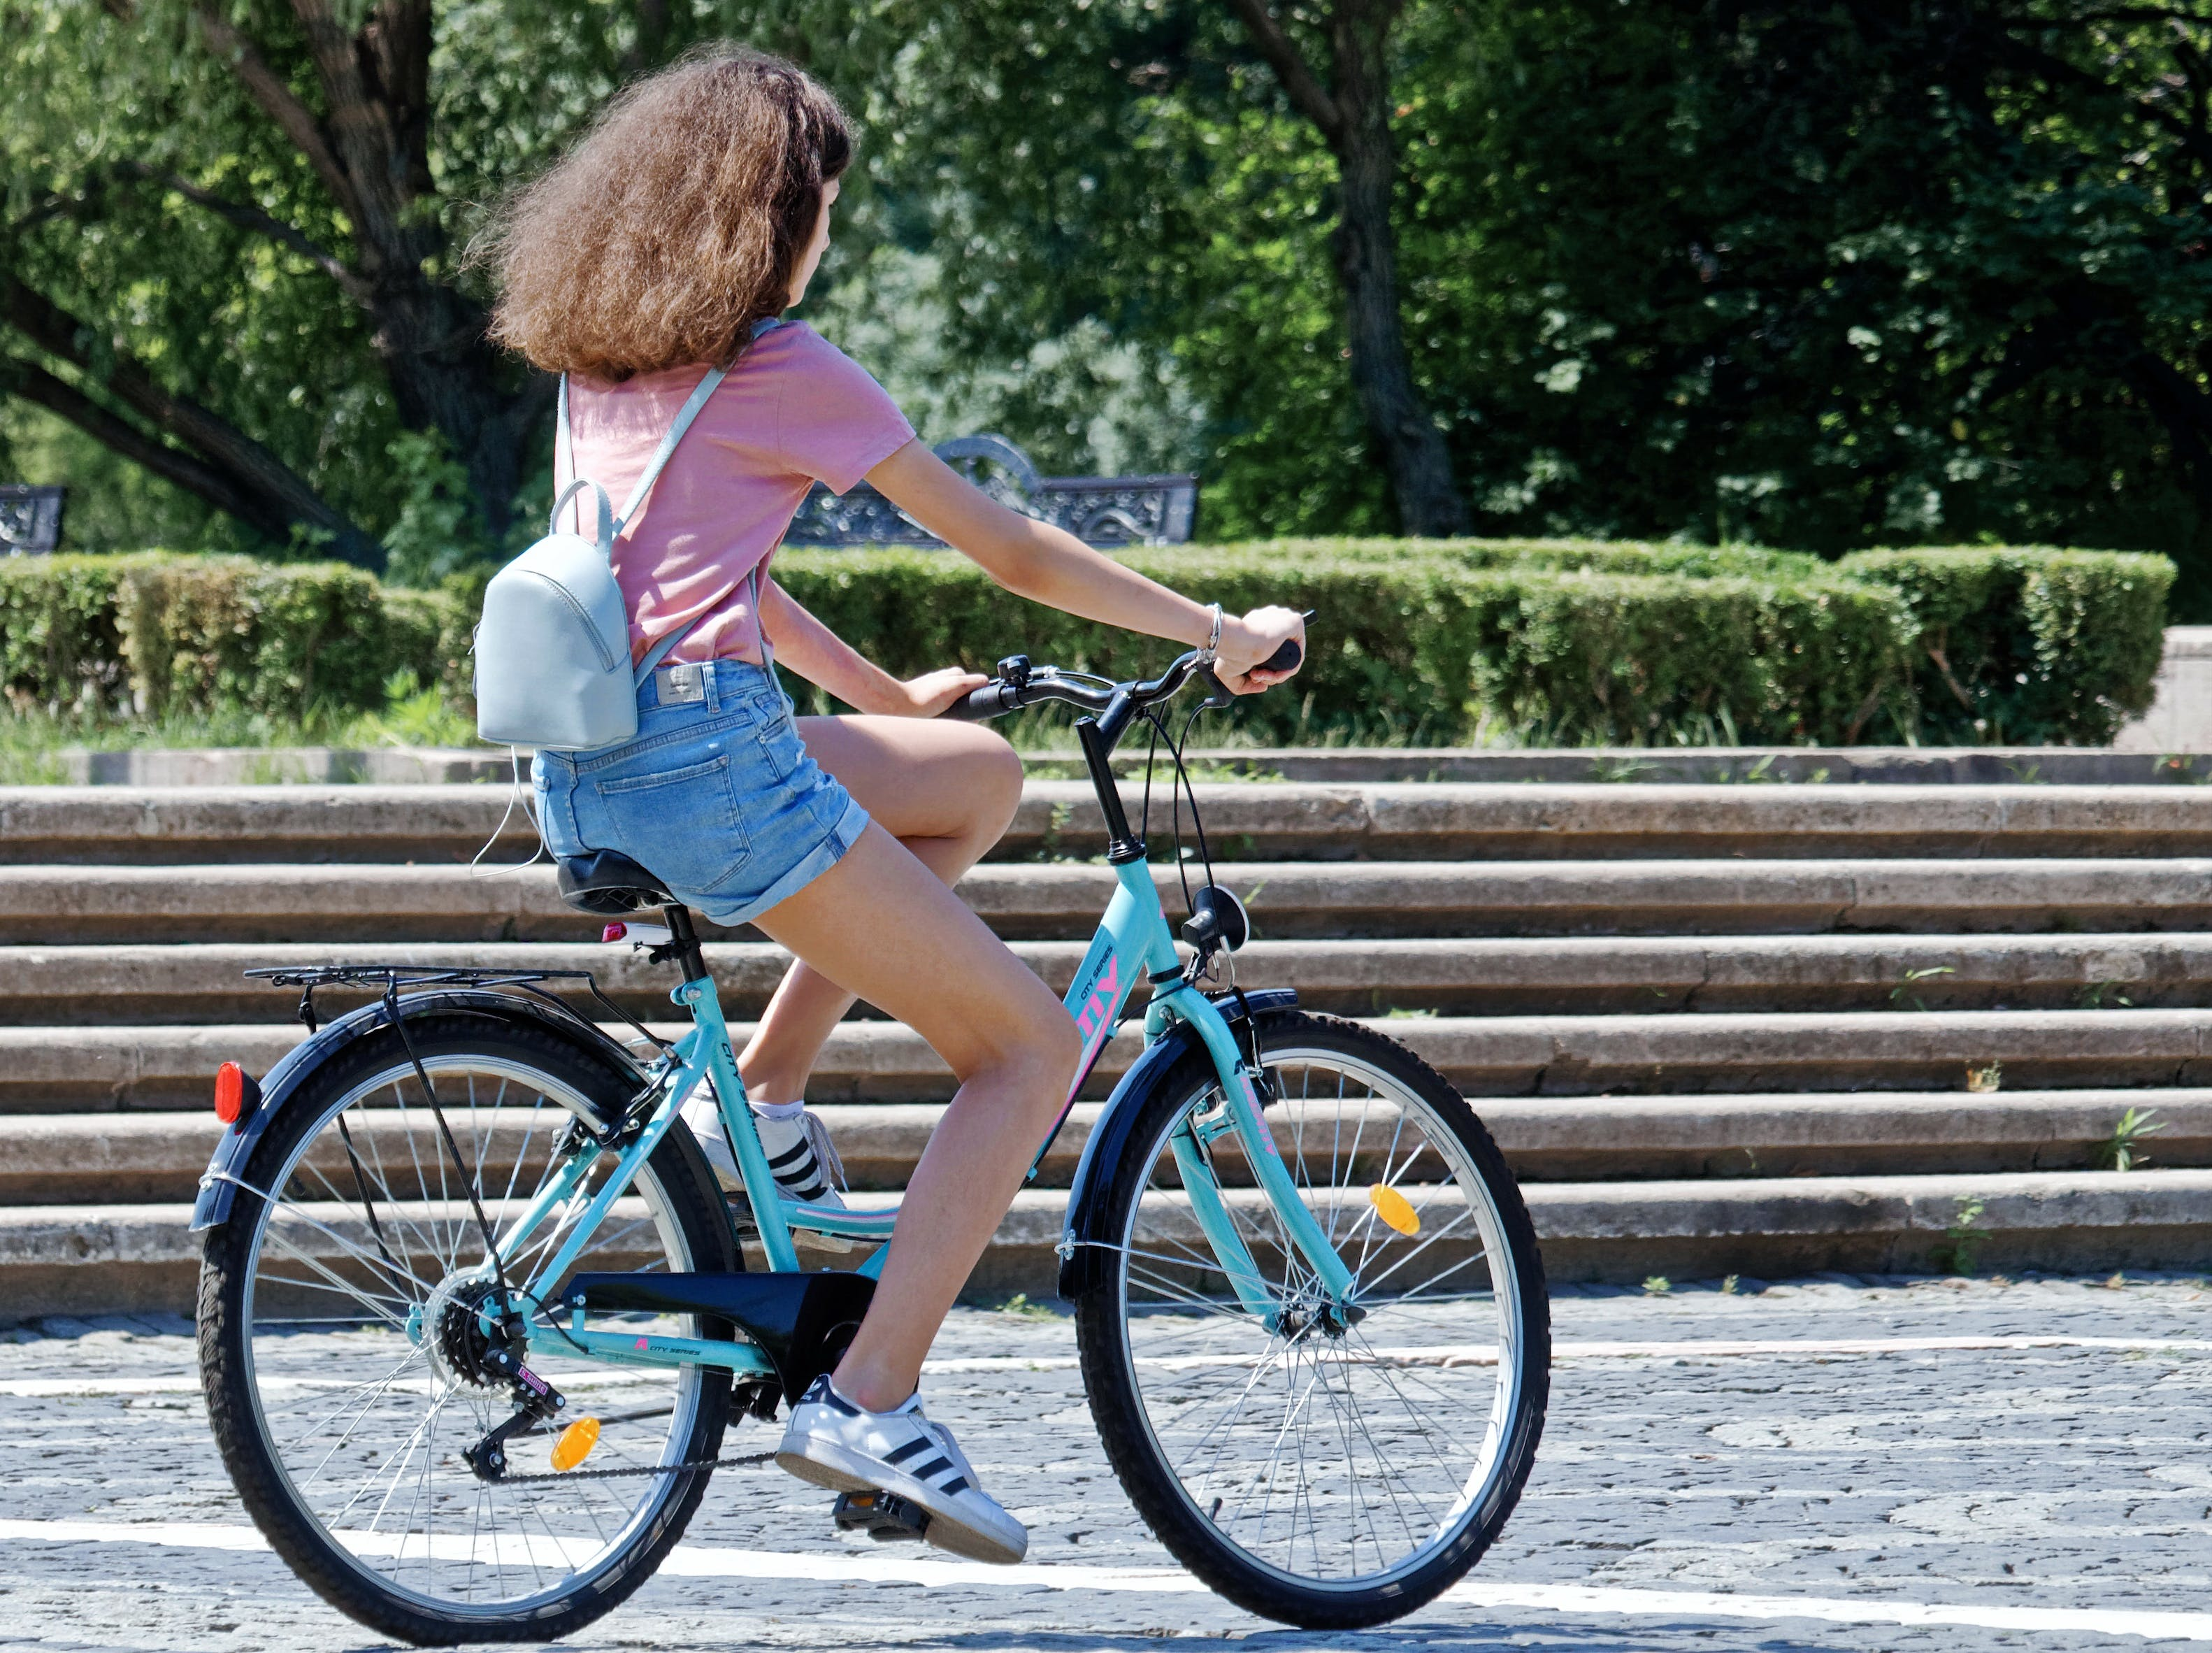 Woman Riding Bicycle Near Concrete Stairs